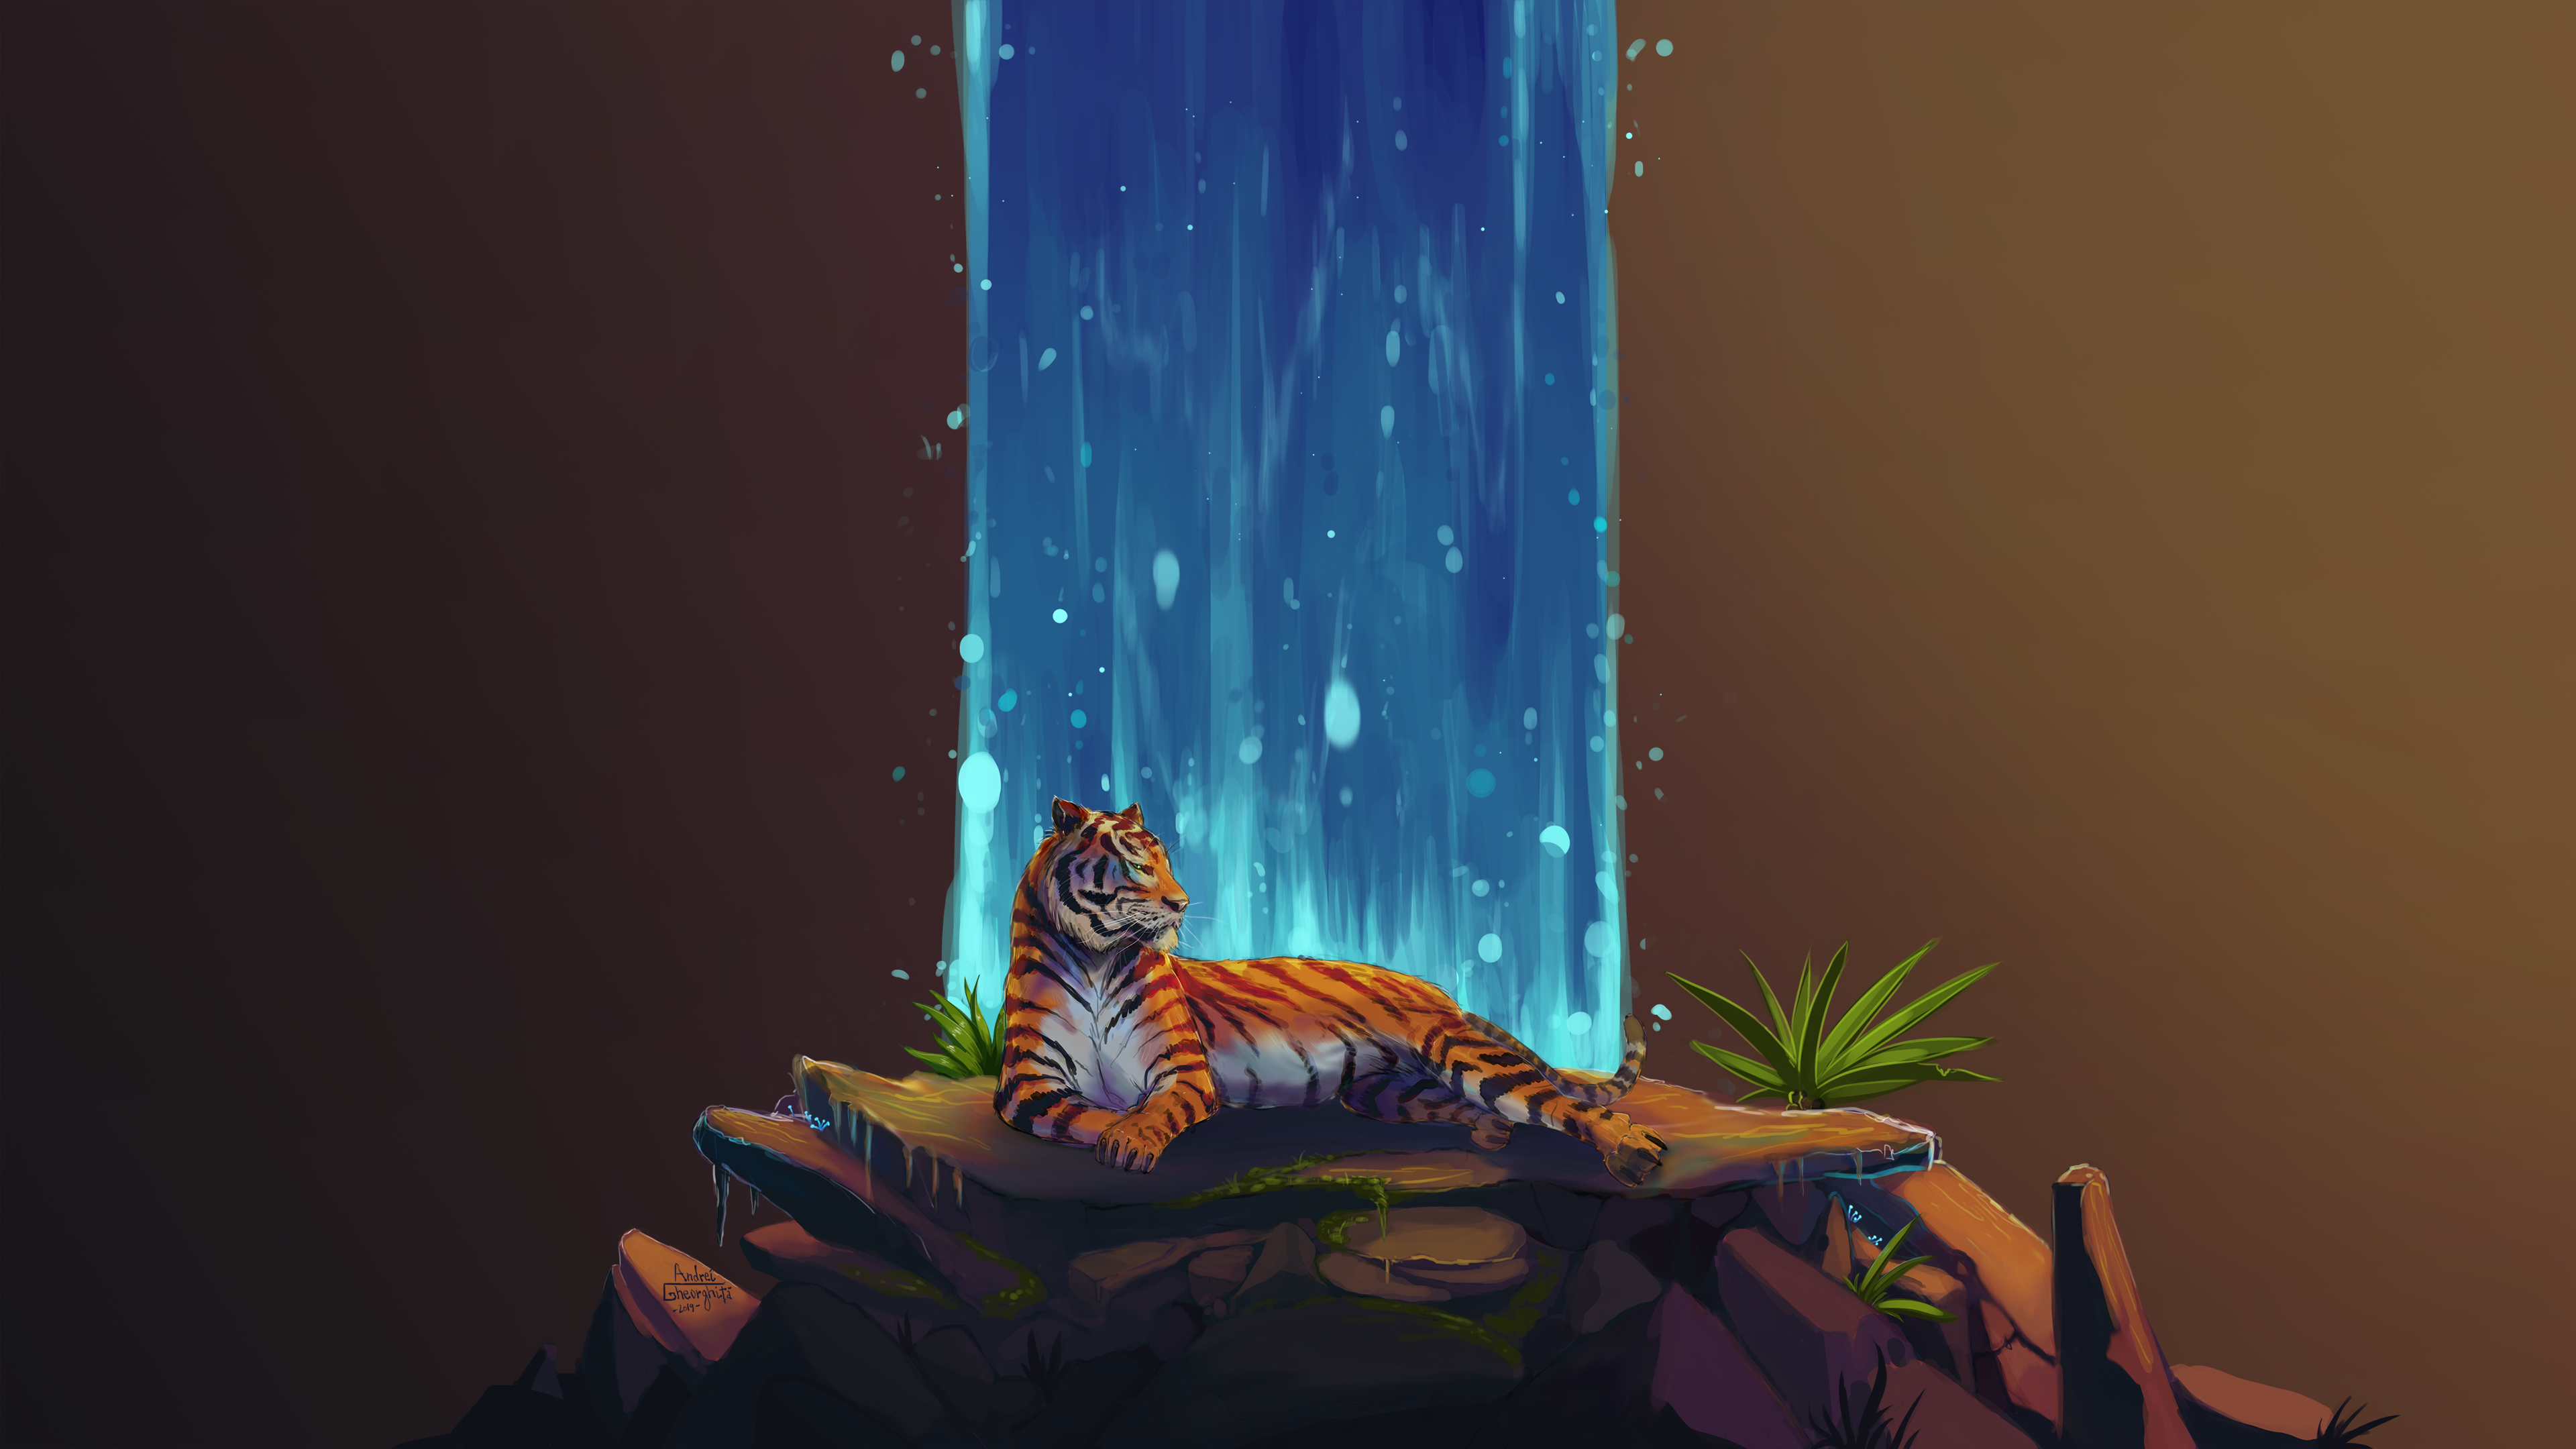 Waterfall Tiger Art HD Wallpaper 4K